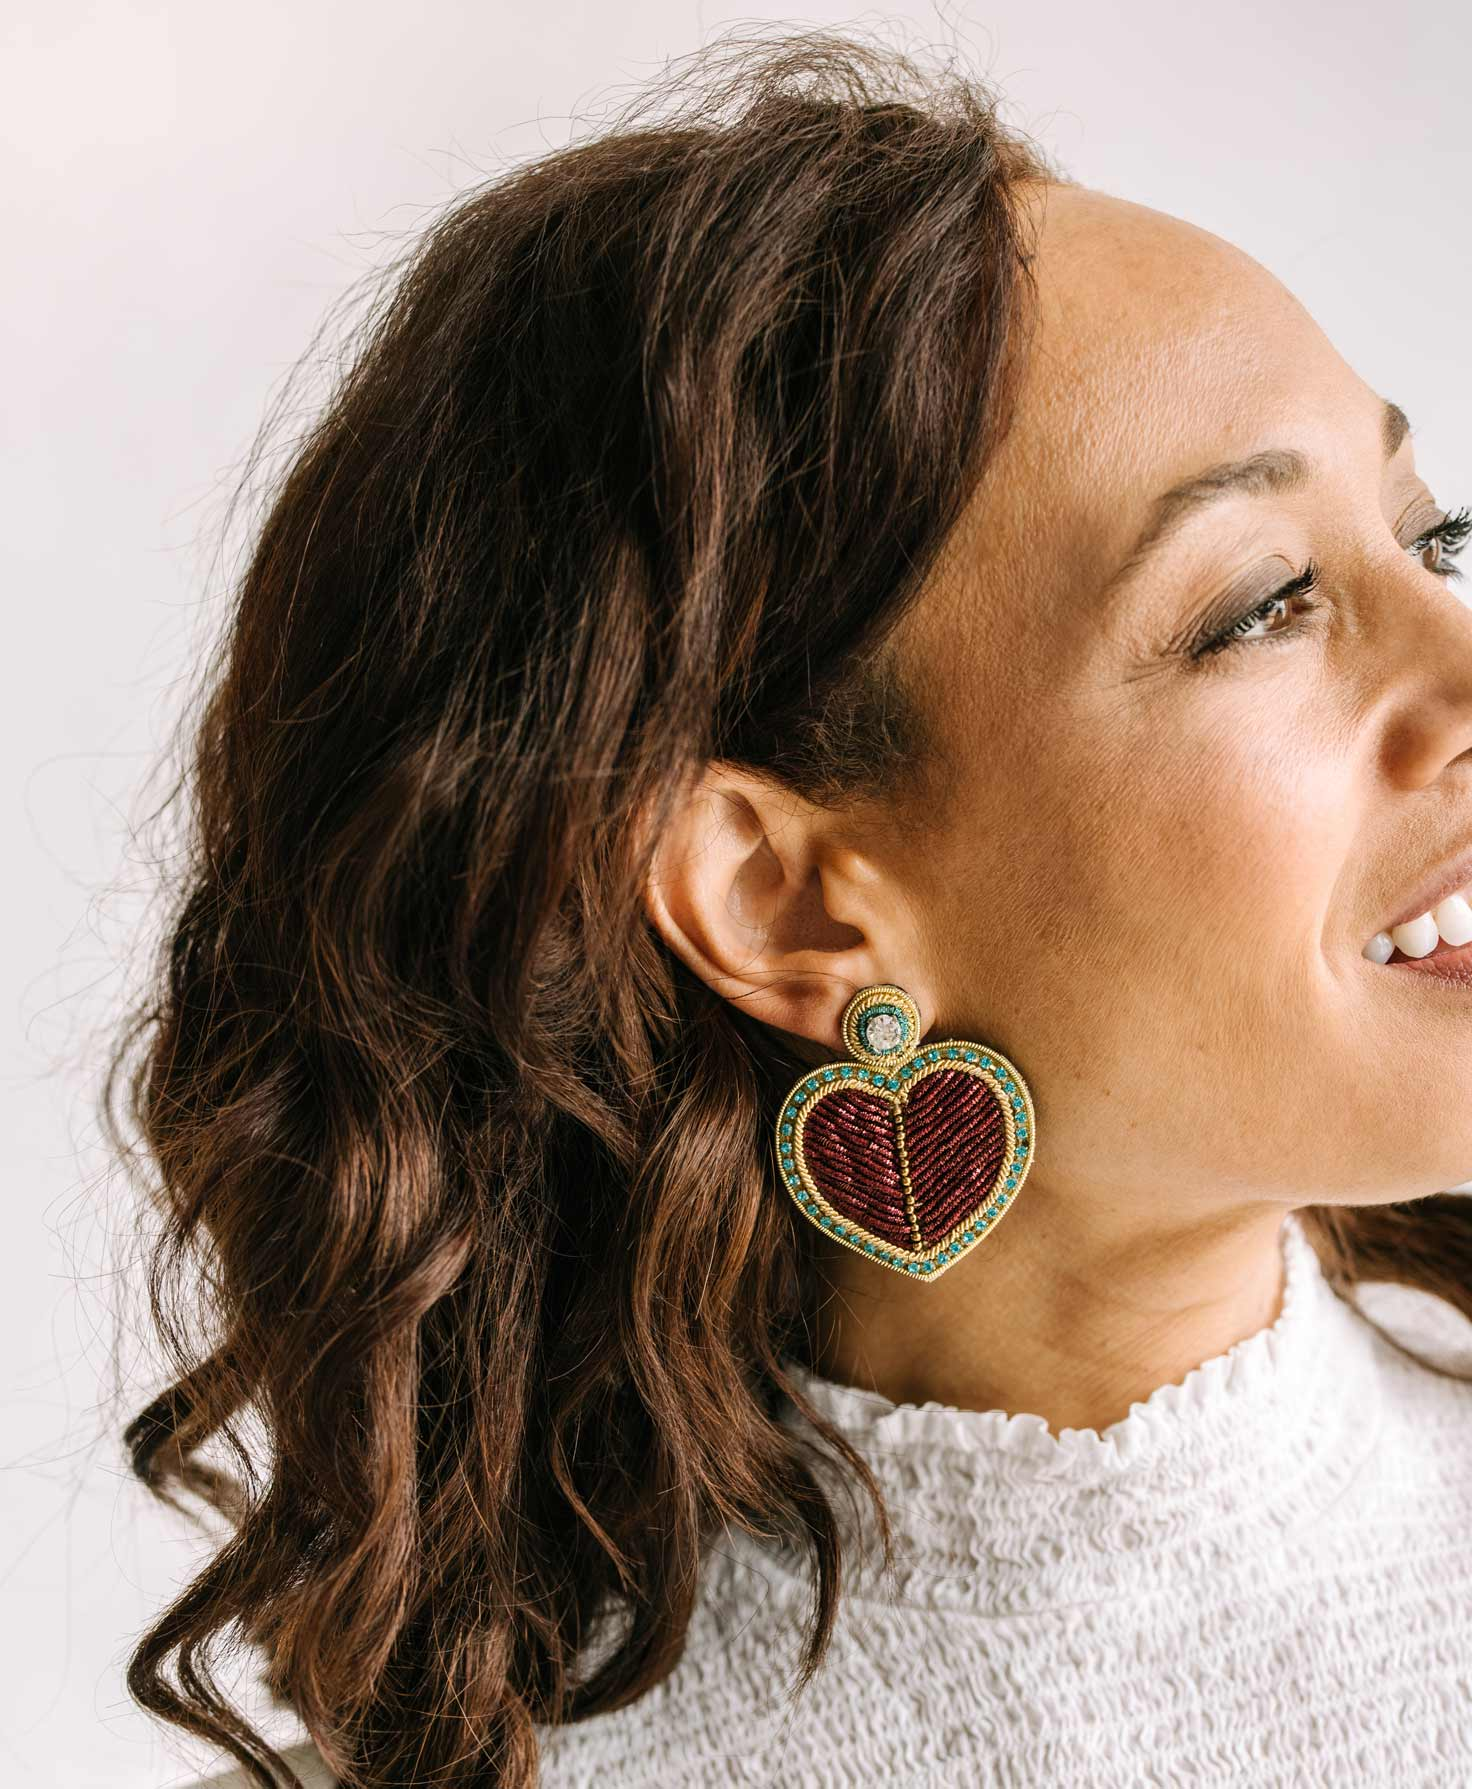 A model wears the Heartstrings Earrings. They make a bold statement with their size and sparkle. The model pairs these statement earrings with a romantic white top.